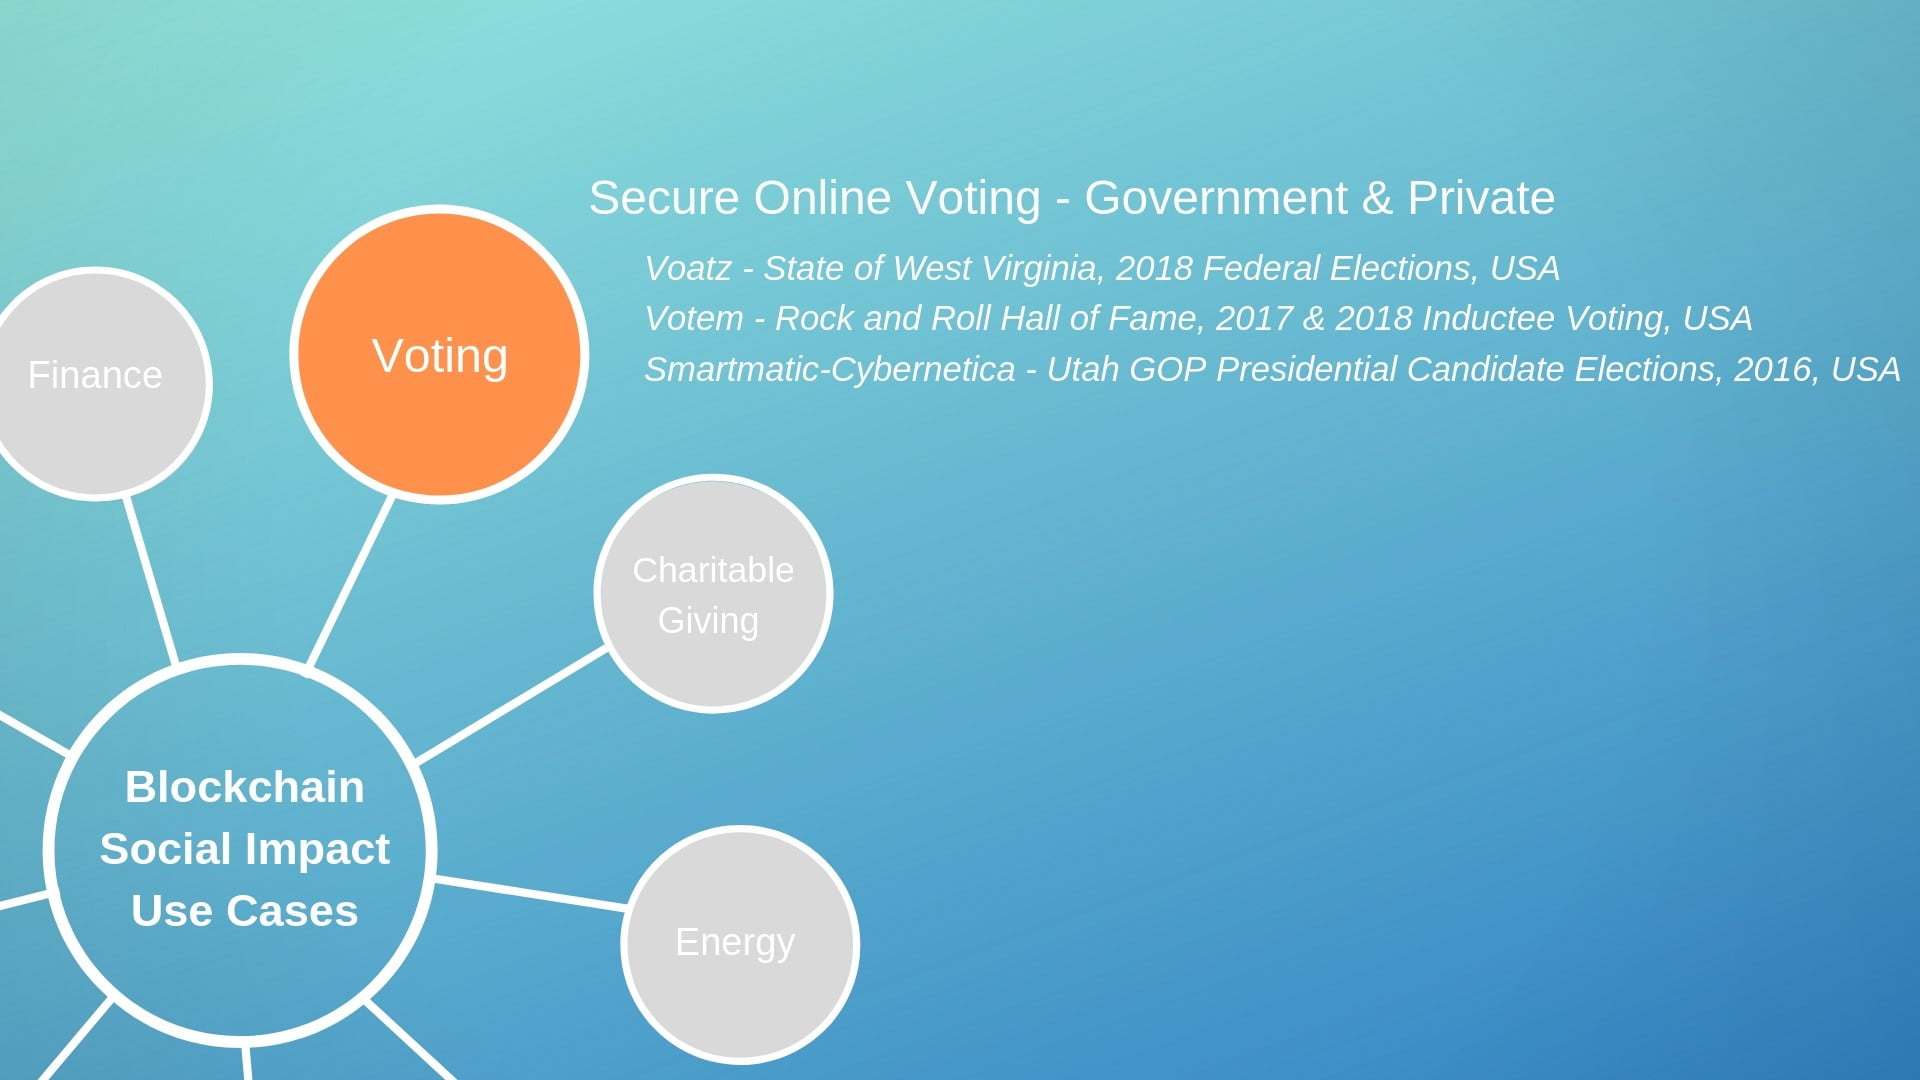 Blockchain-based voting systems have potential despite security concerns